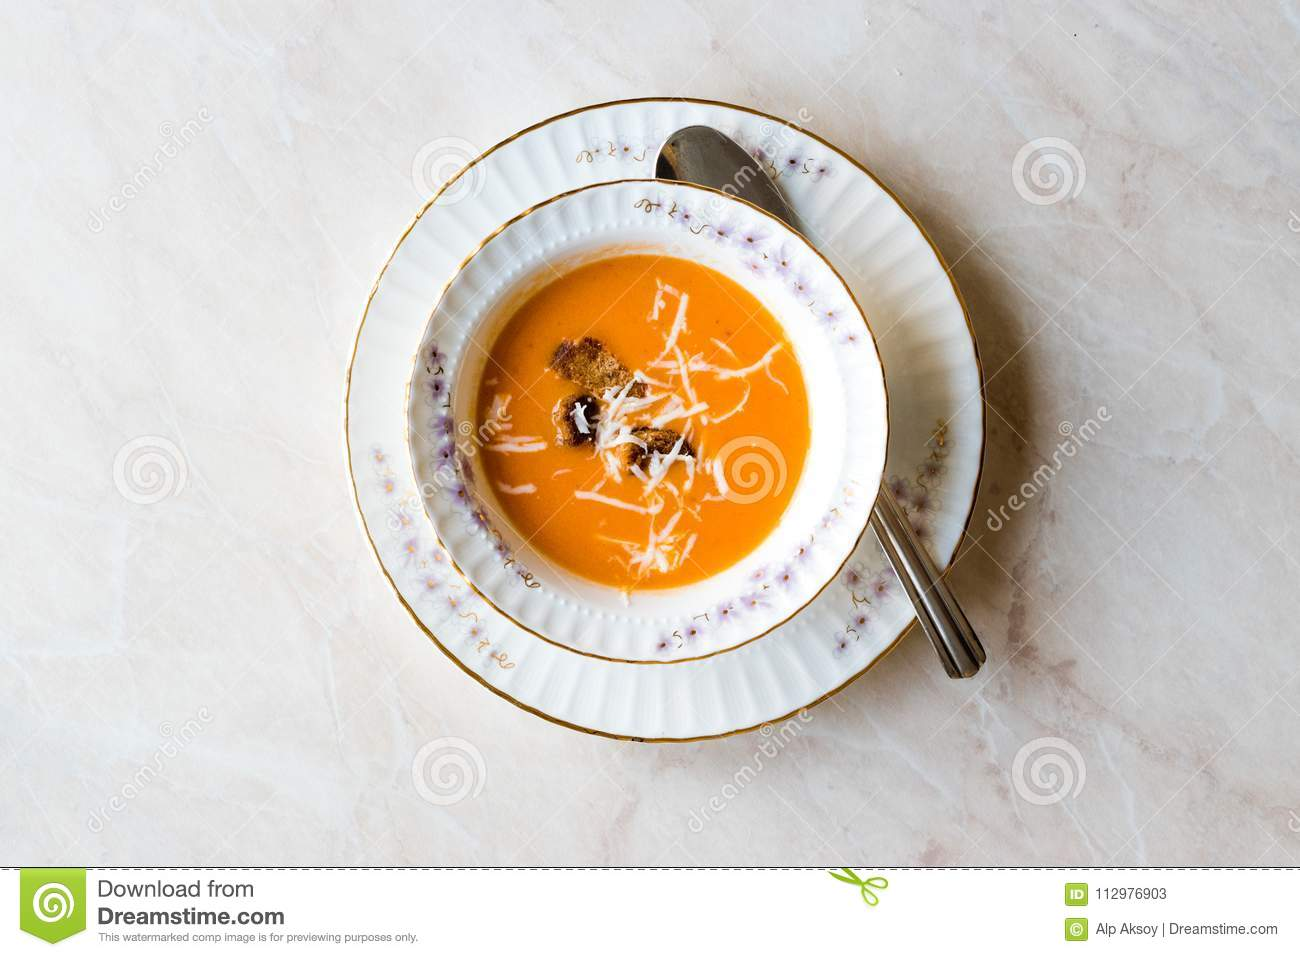 Homemade Tomato Soup with Croutons and Cheese.